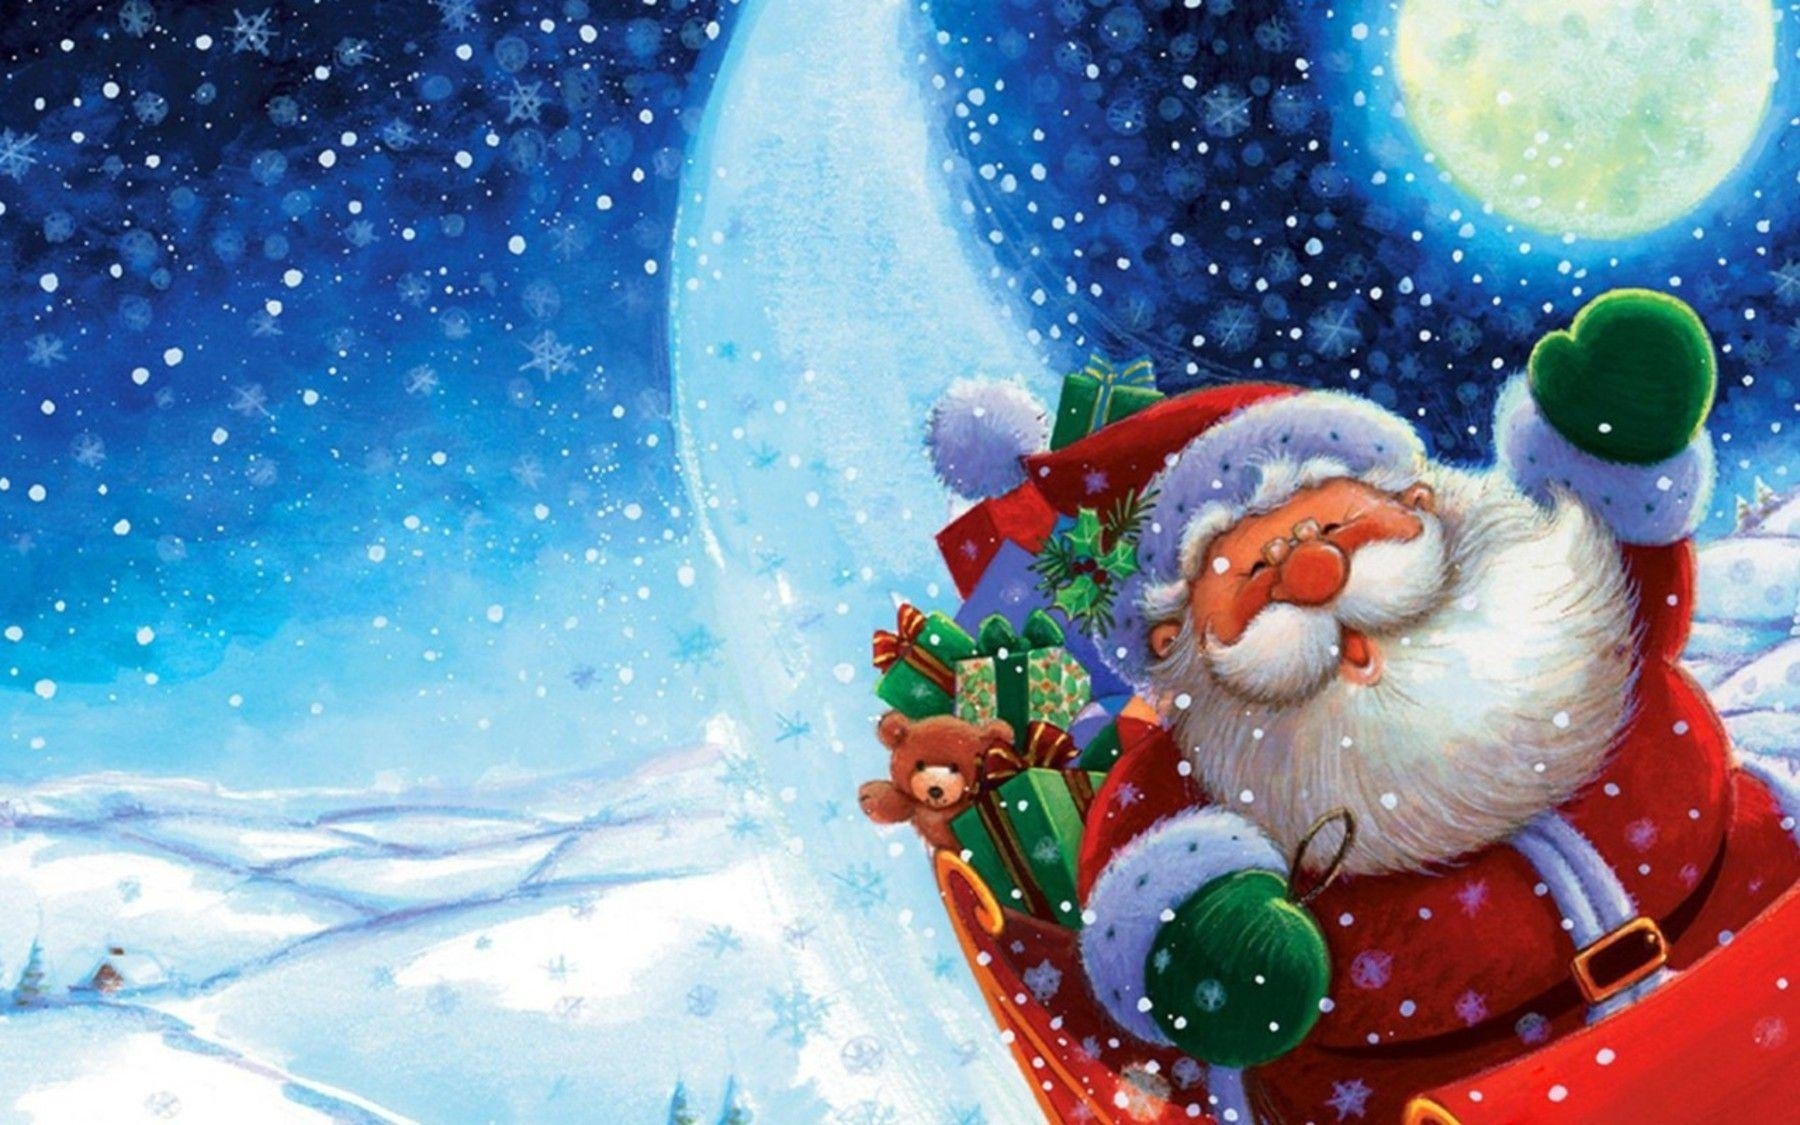 santa claus wallpapers free - wallpaper cave